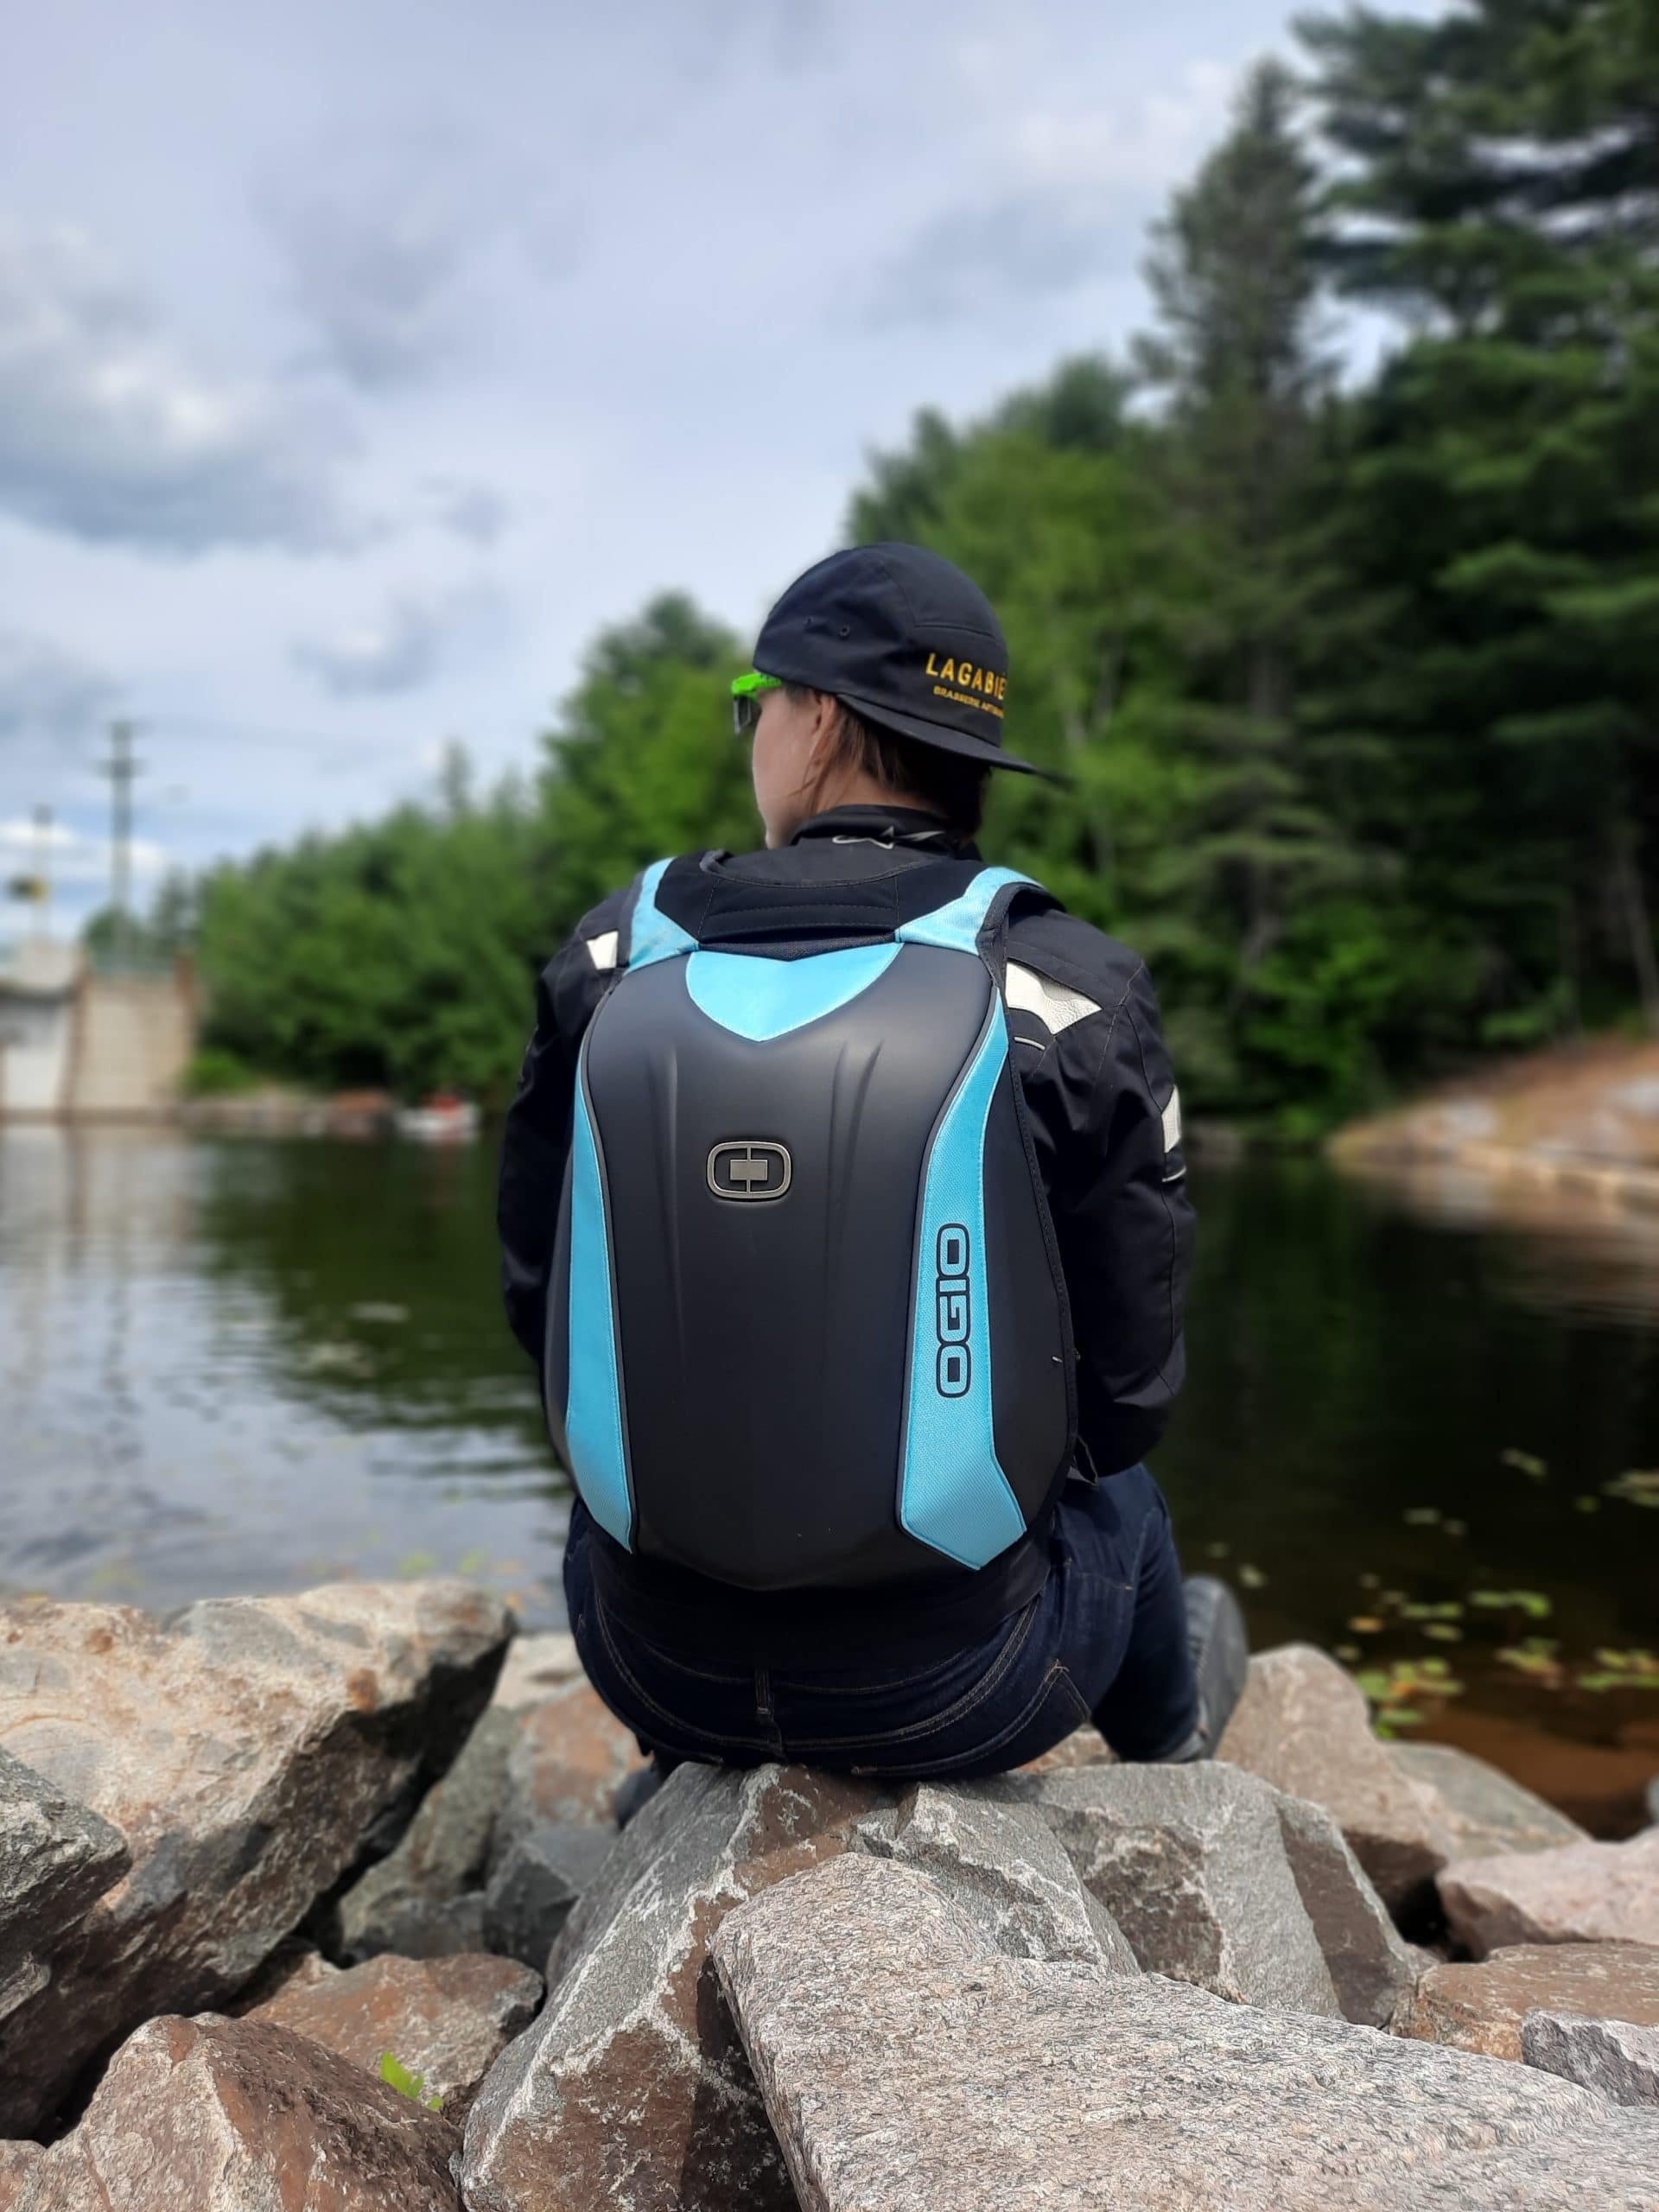 Testing the OGIO Mach 3S LE backpack: a versatile bag!